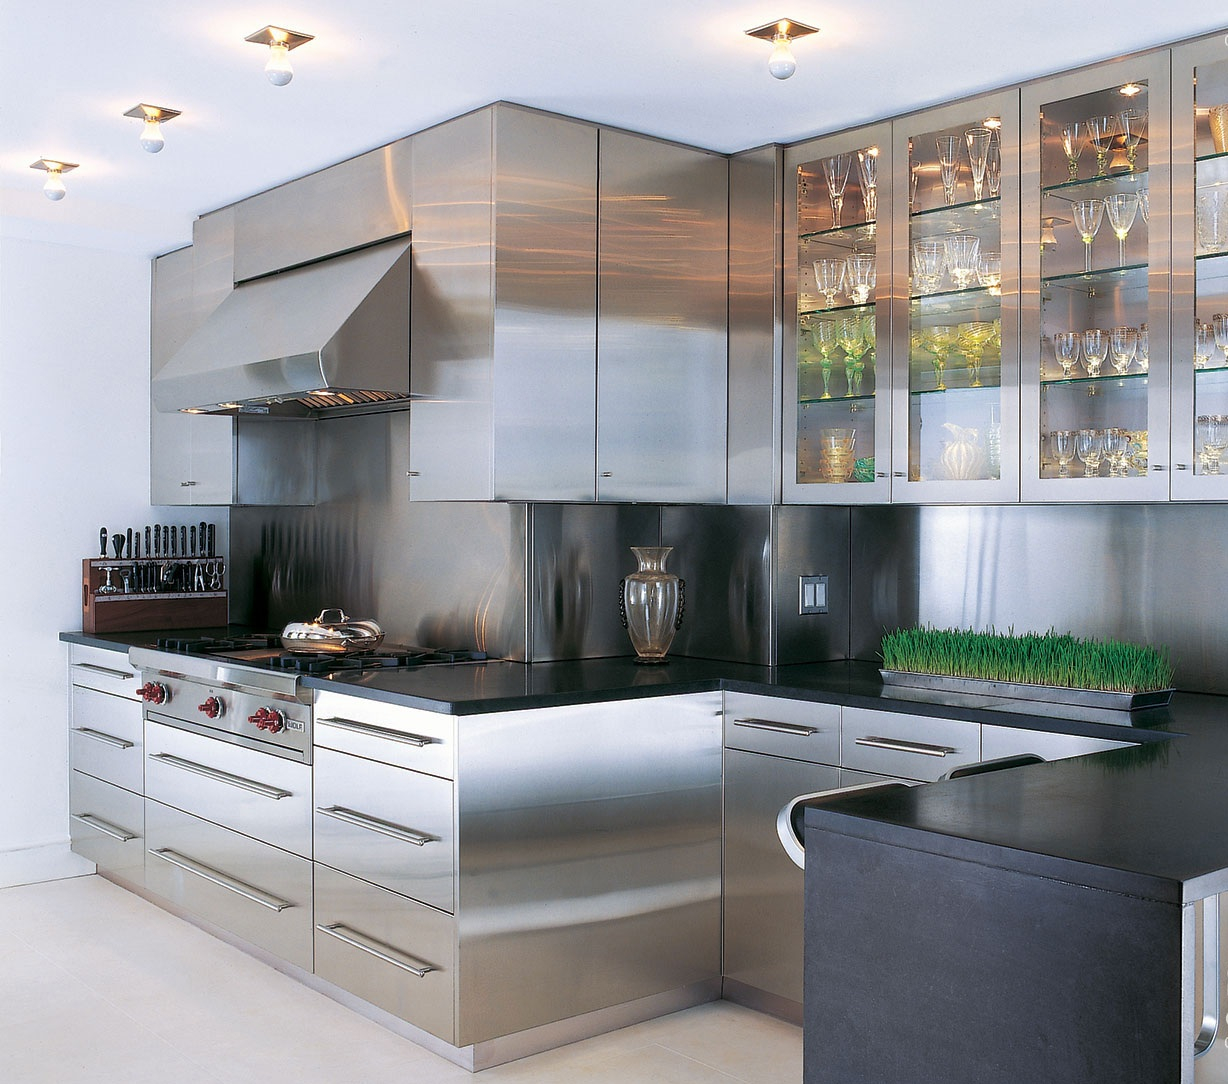 Stainless Steel Kitchen Cabinets With Glass Doors • Kitchen ...